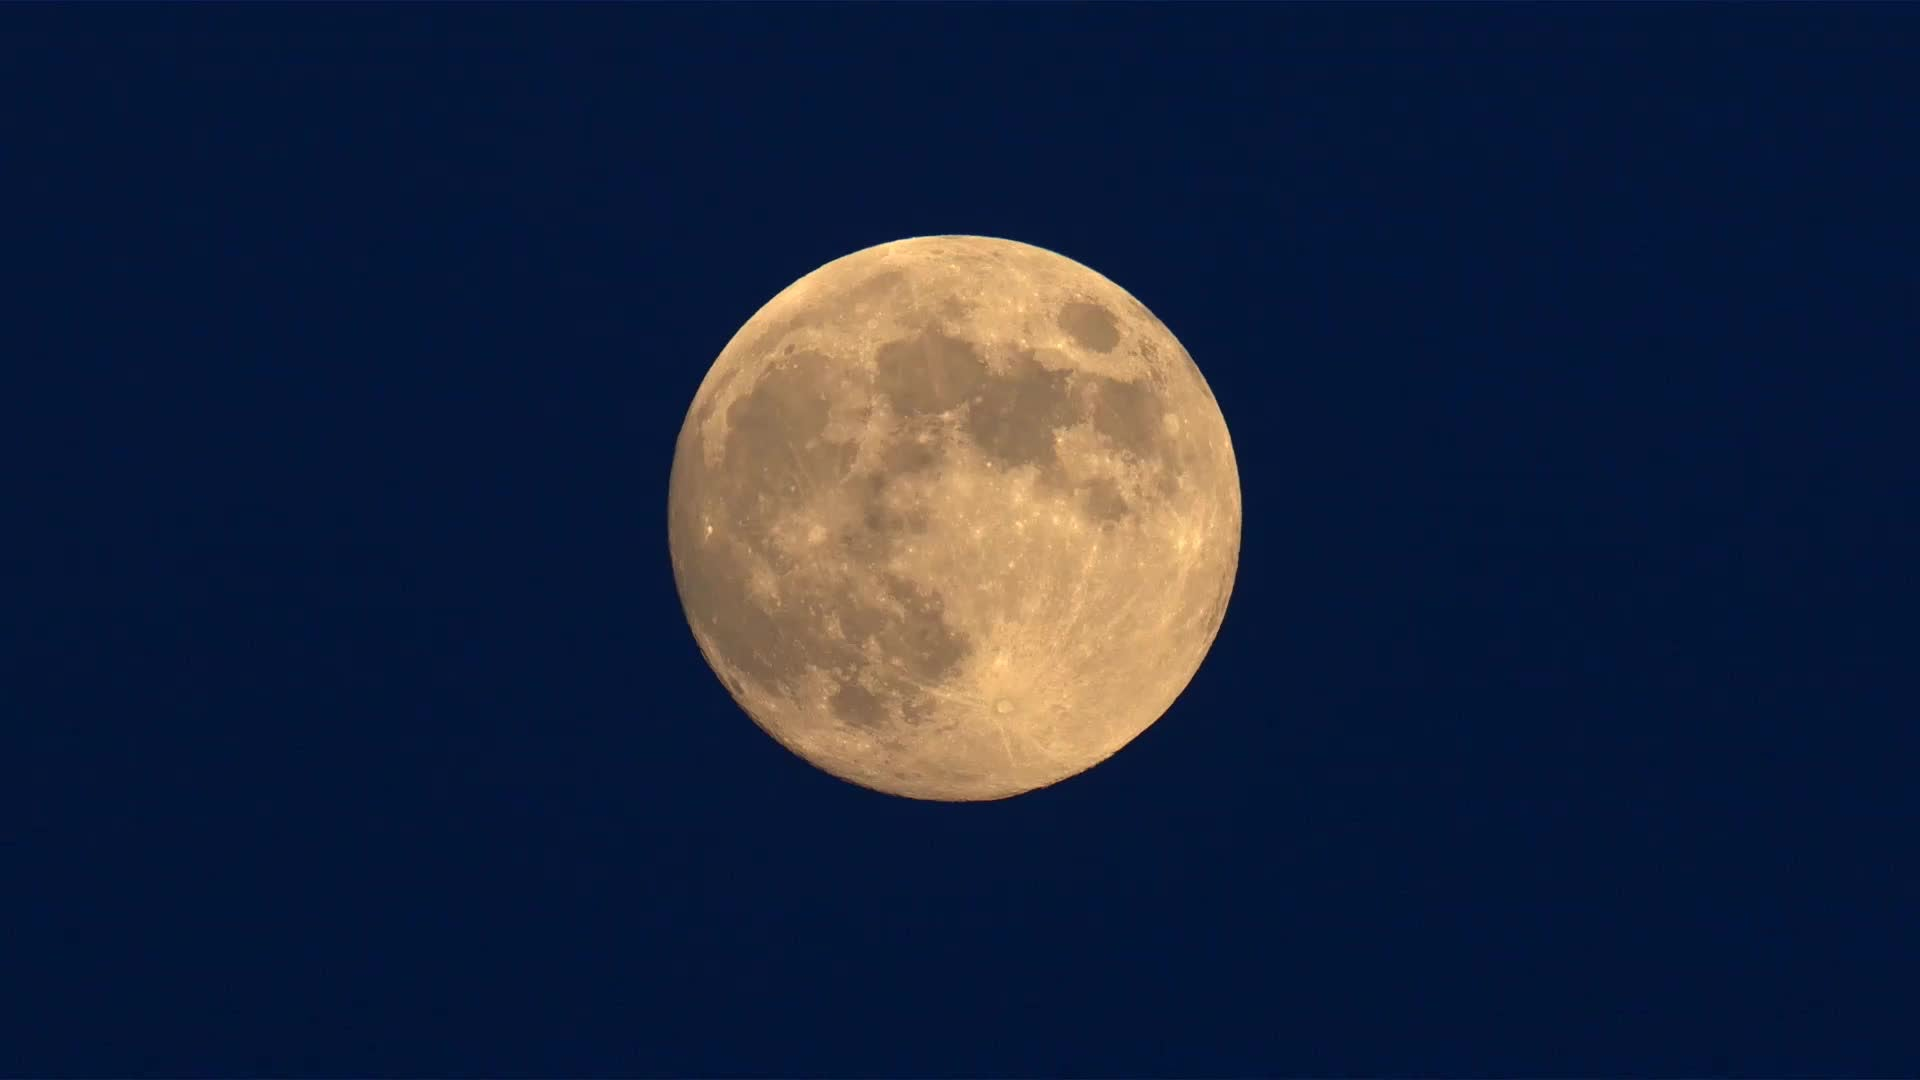 The full moon will appear full three days this week.